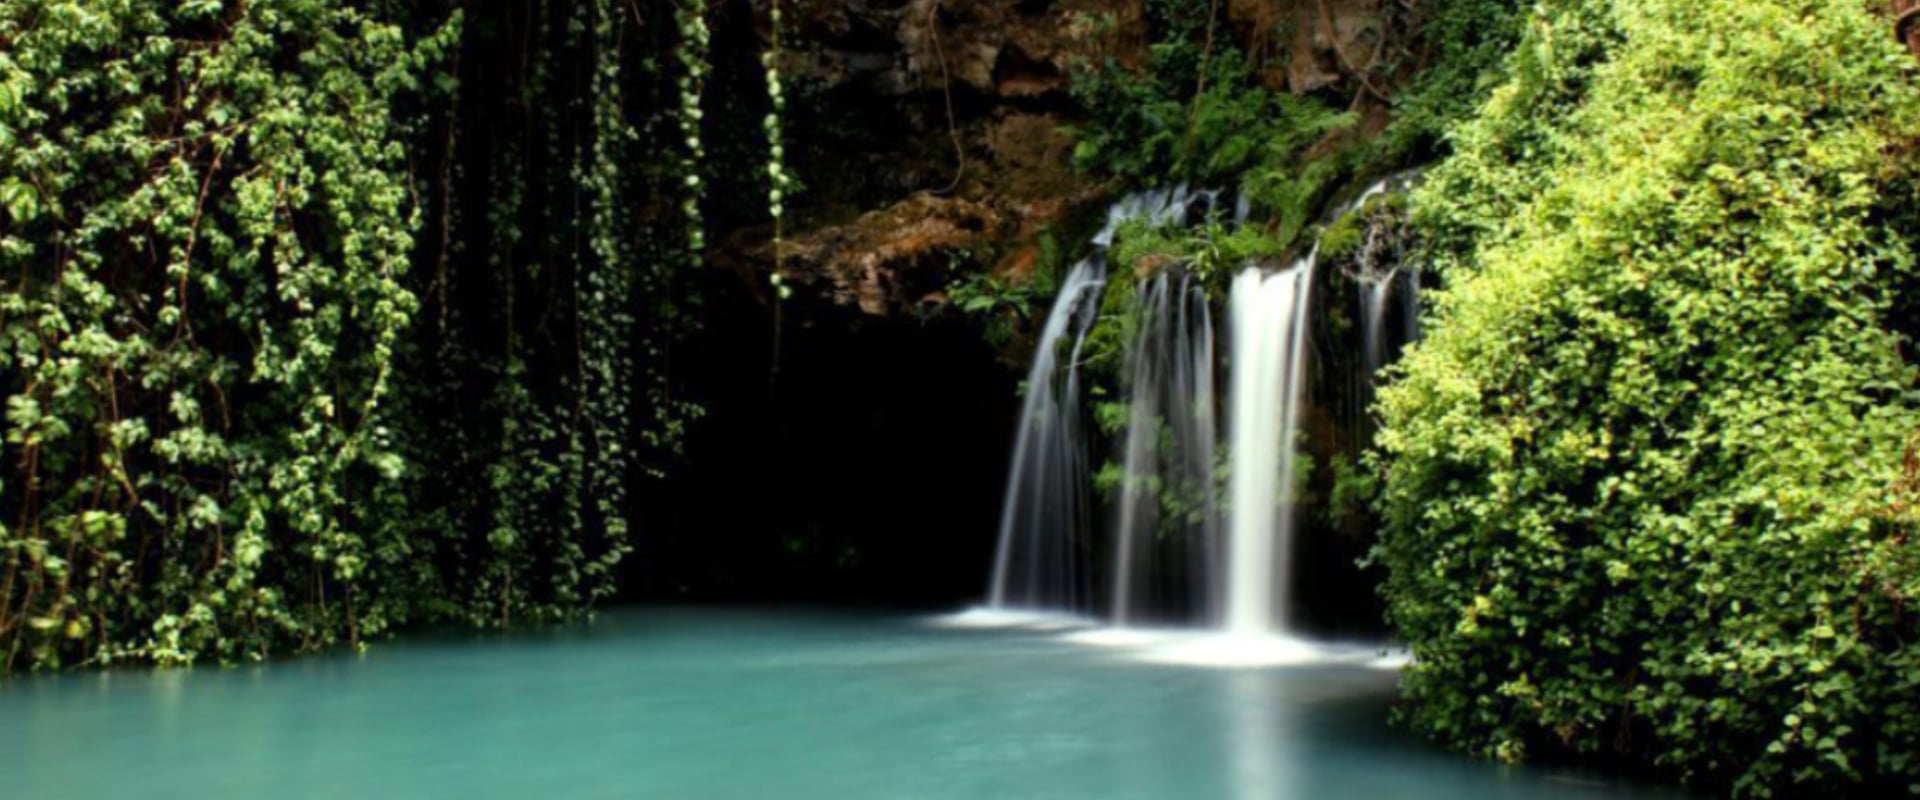 Take a visit to the Ngare Ndare forest and see the Blue Pools